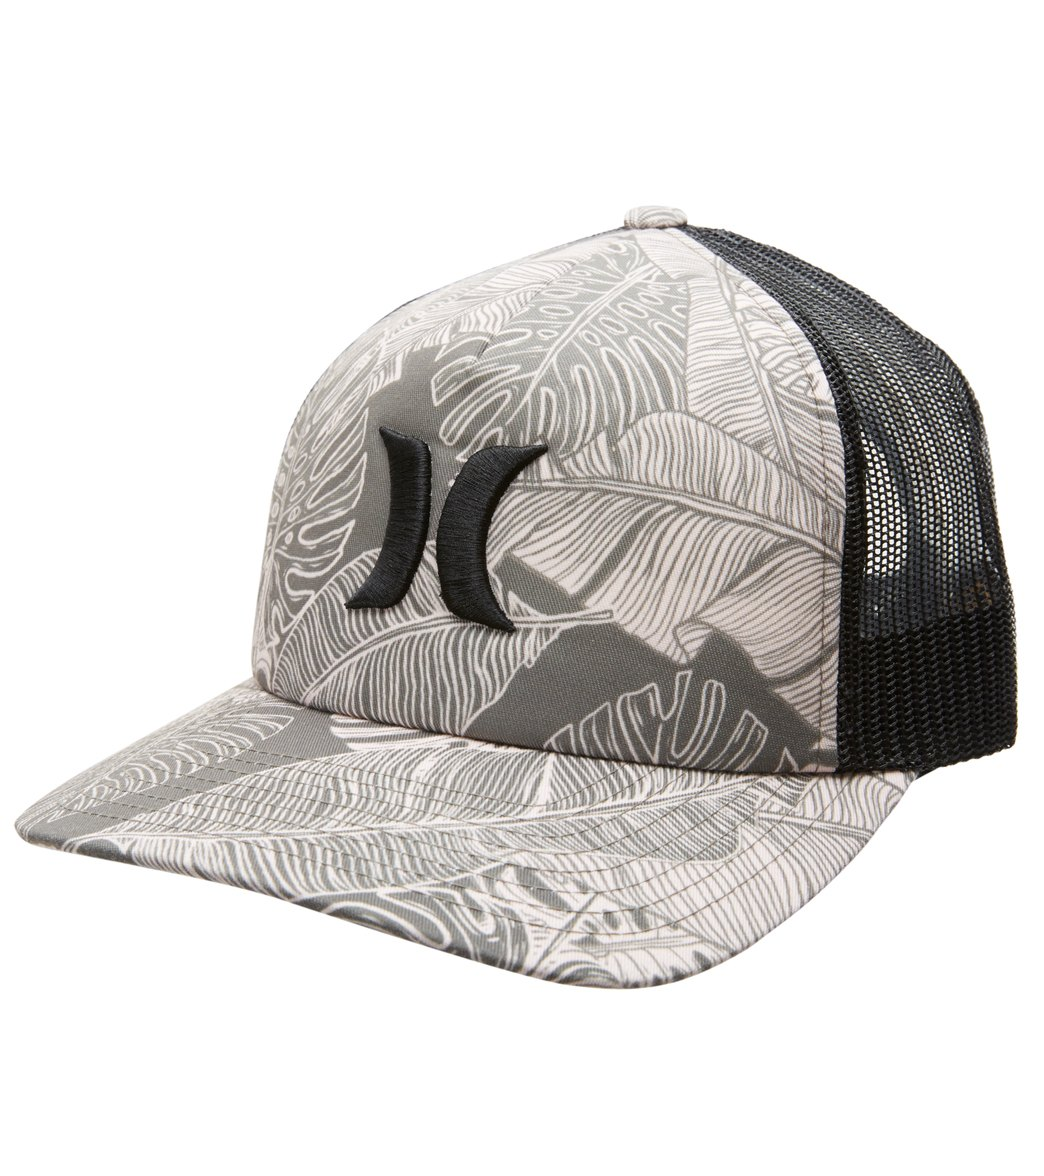 Hurley Paradise Winds Trucker Hat at SwimOutlet.com 2a588b66dab1